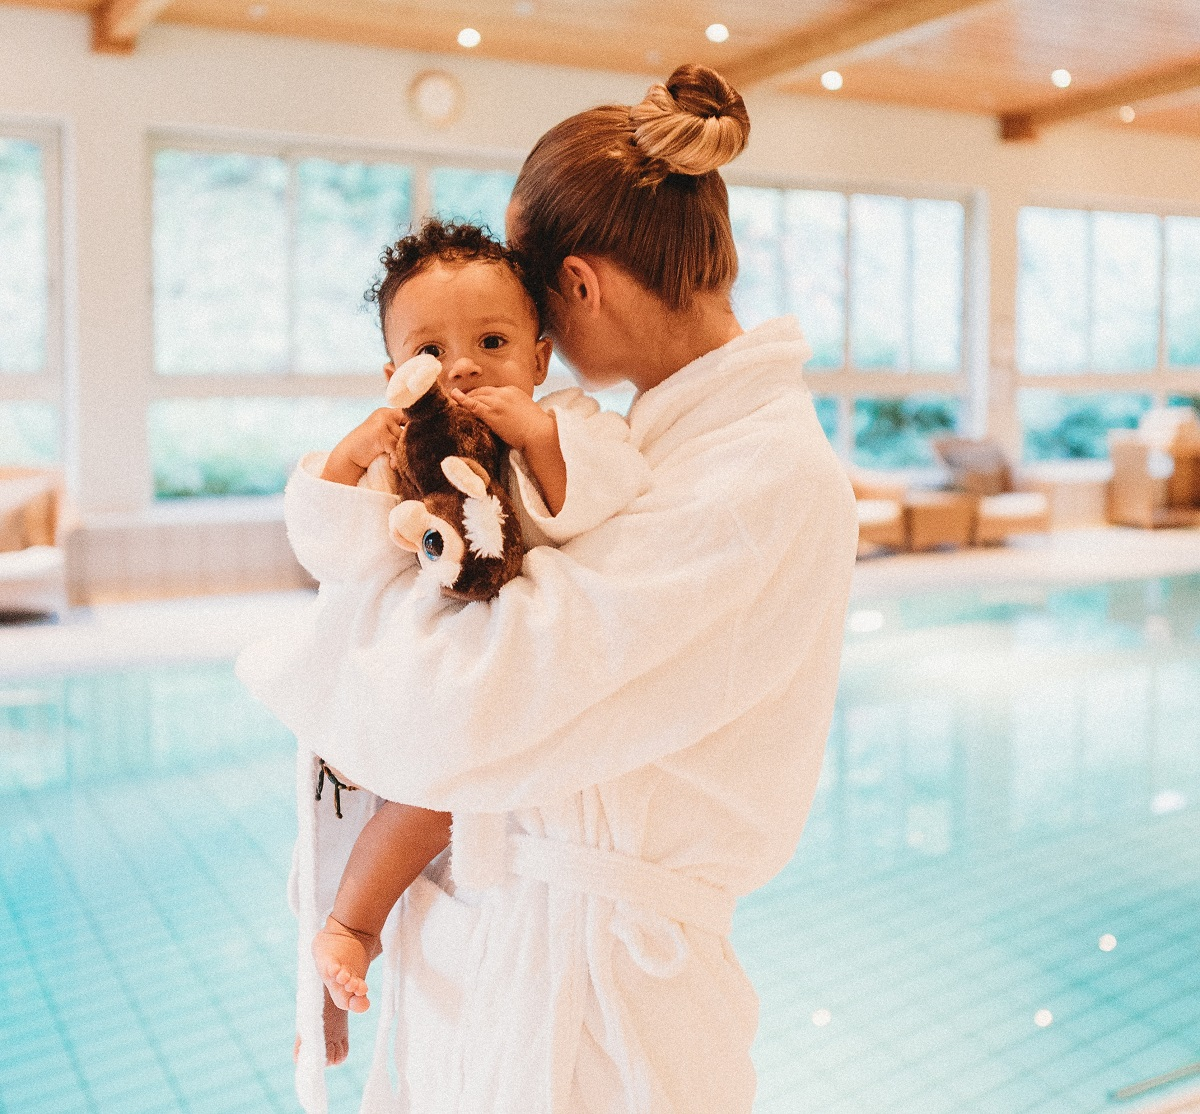 Woman in spa with baby